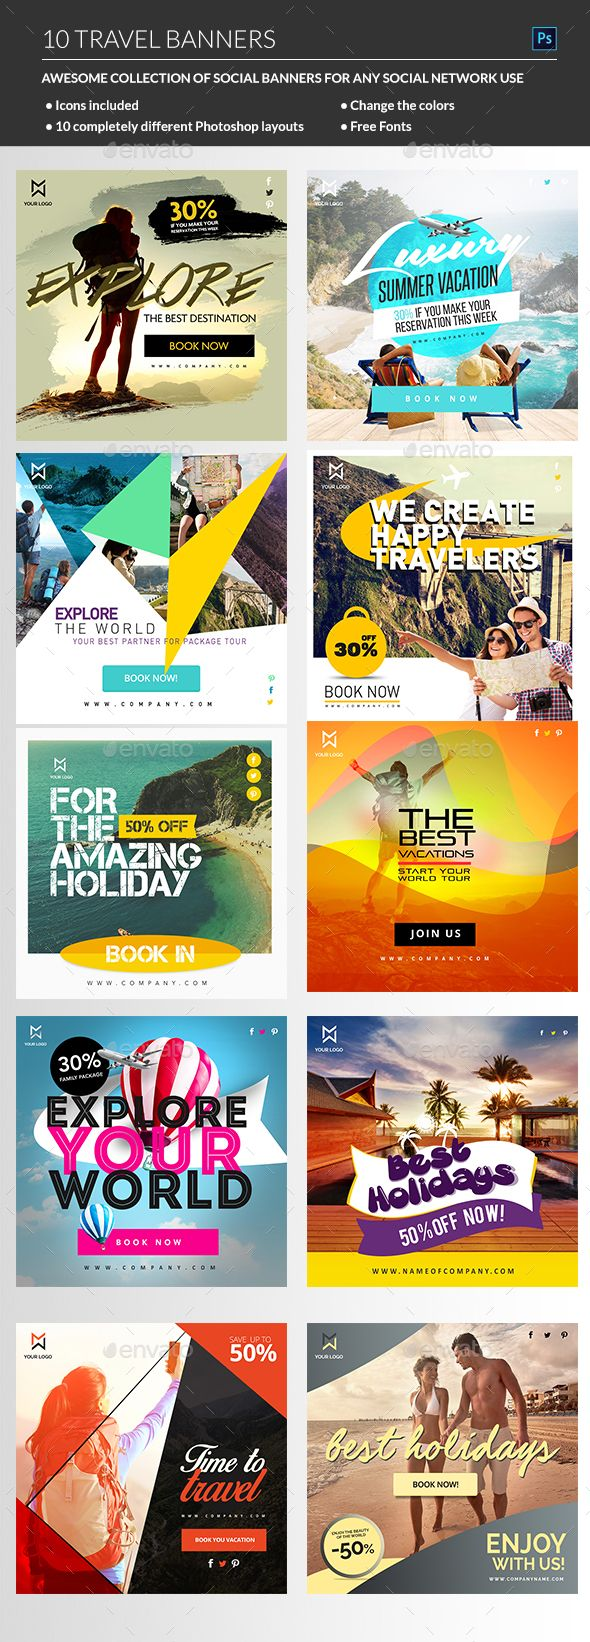 Travel Banners Template PSD Download here httpgraphicrivernetitem